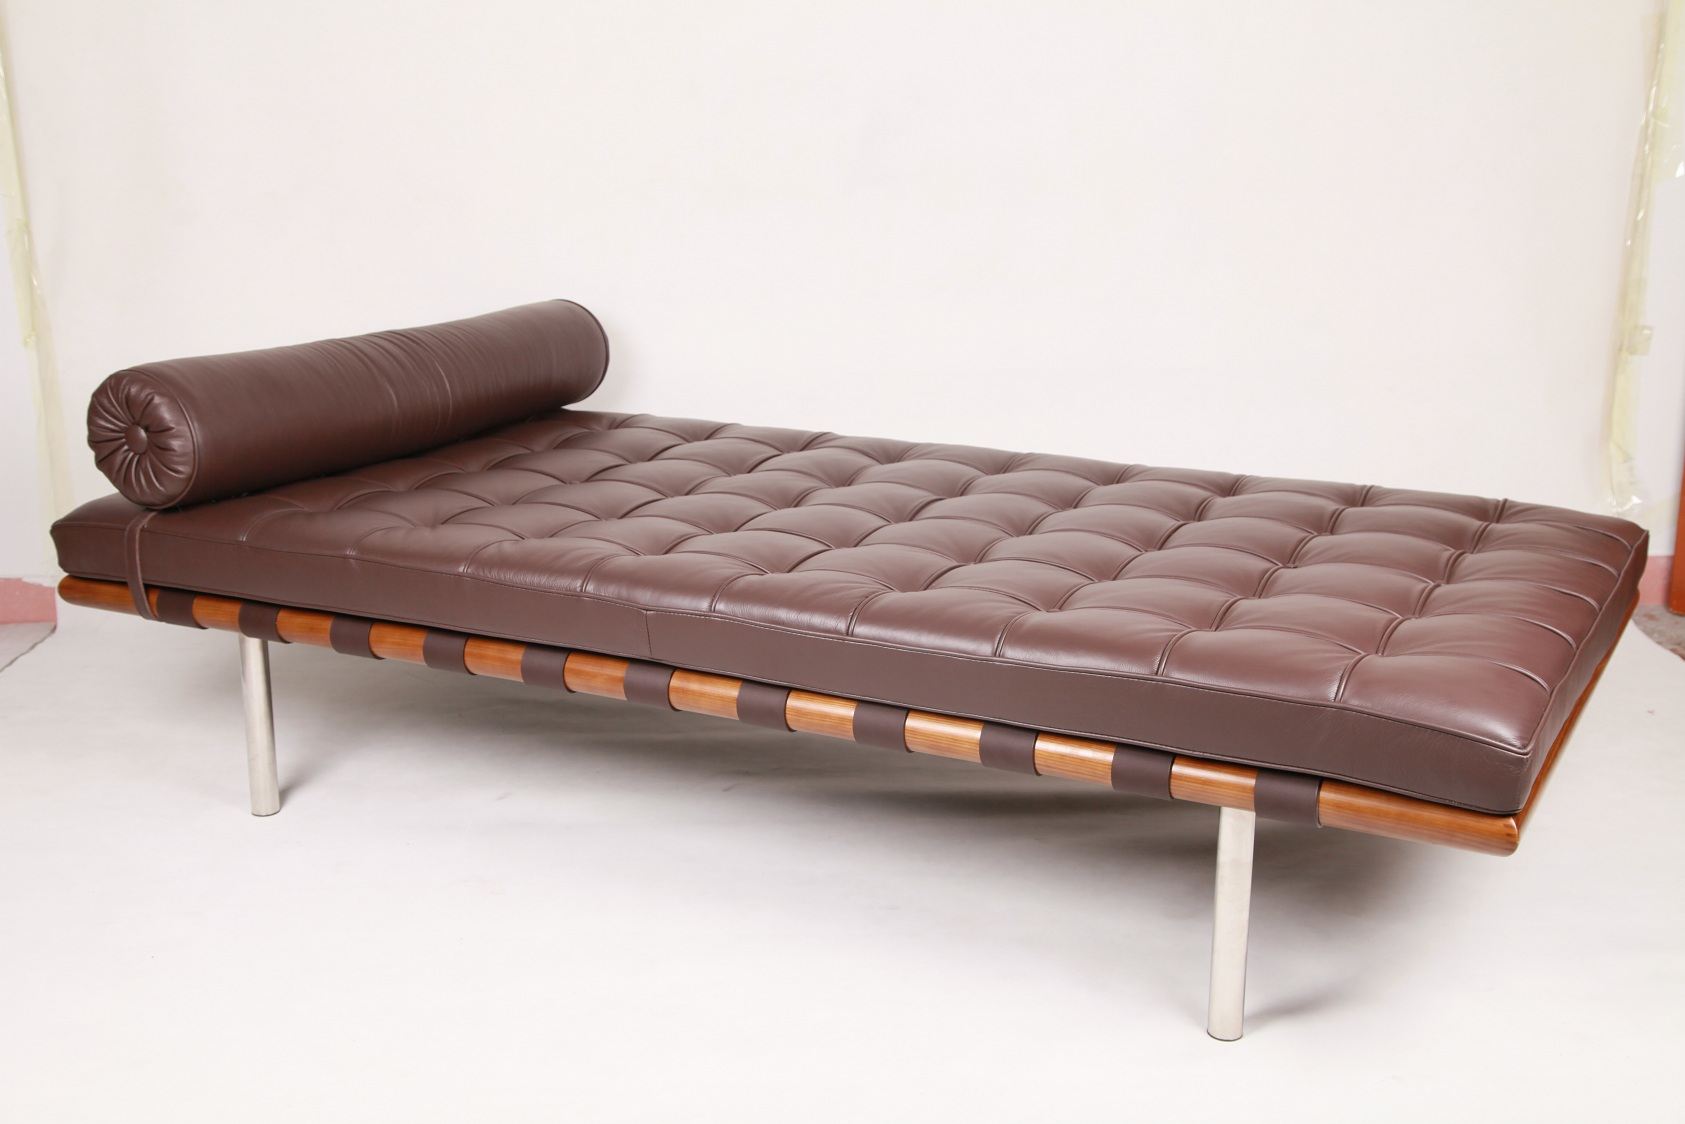 wood frame leather Daybed